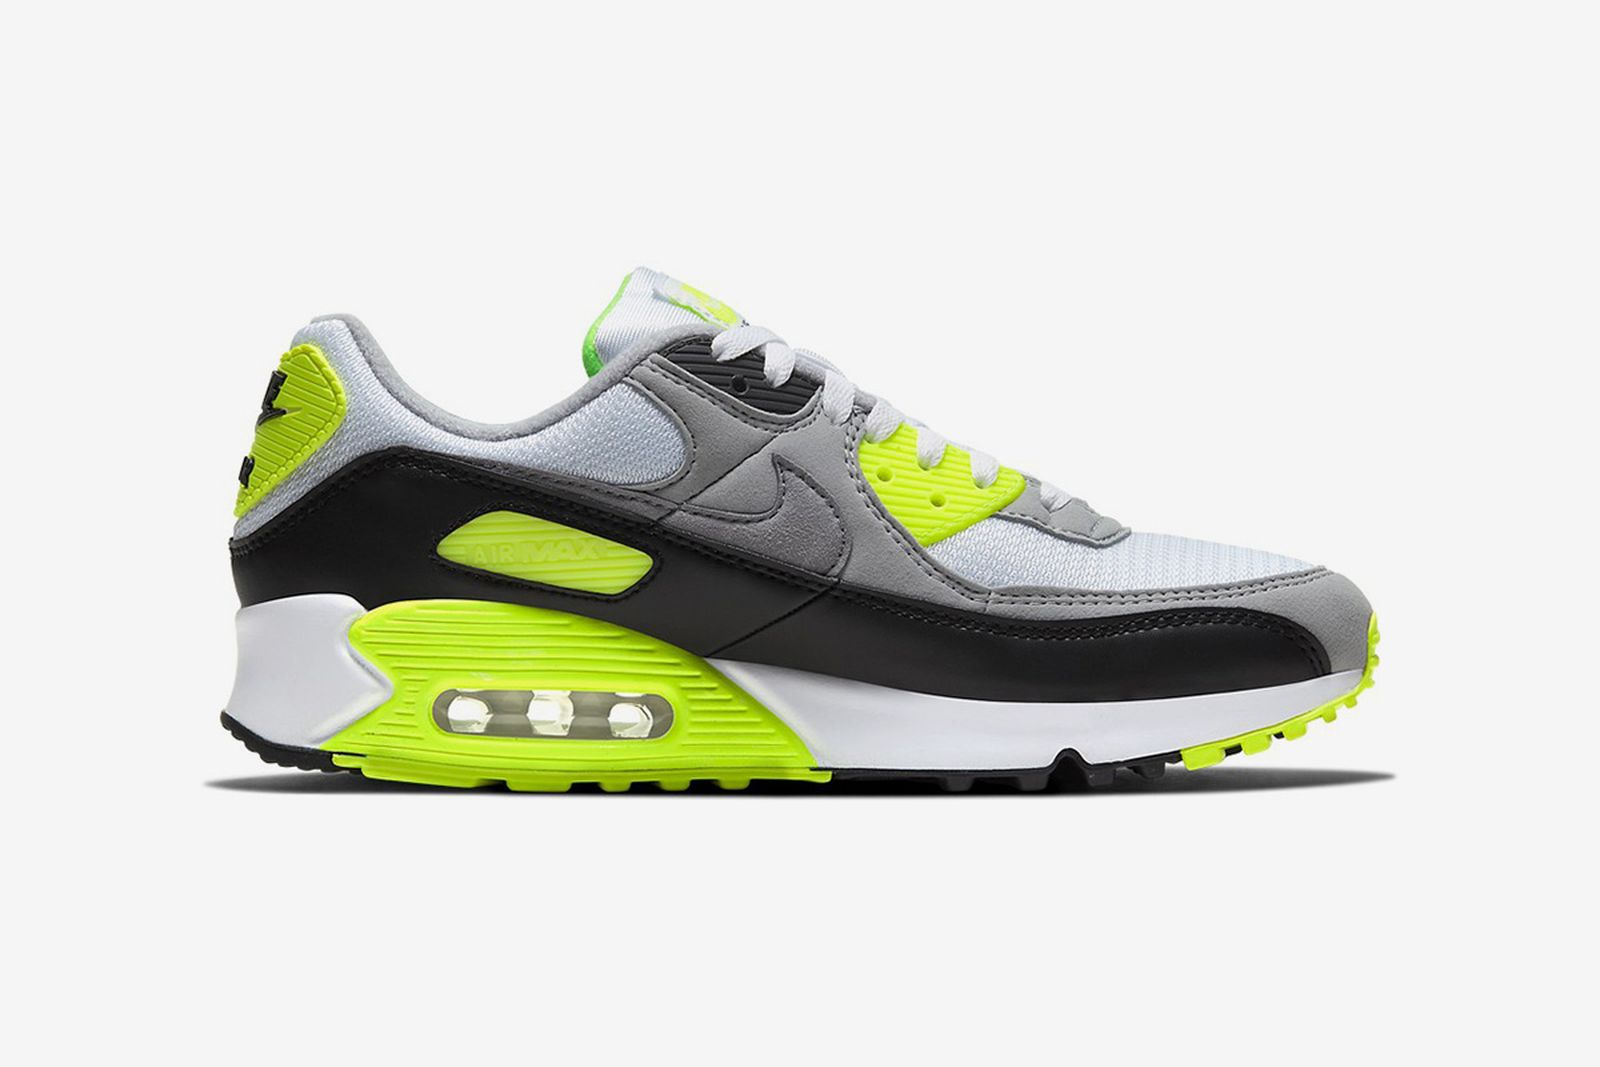 nike-air-max-90-30th-anniversary-colorways-release-date-price-1-12